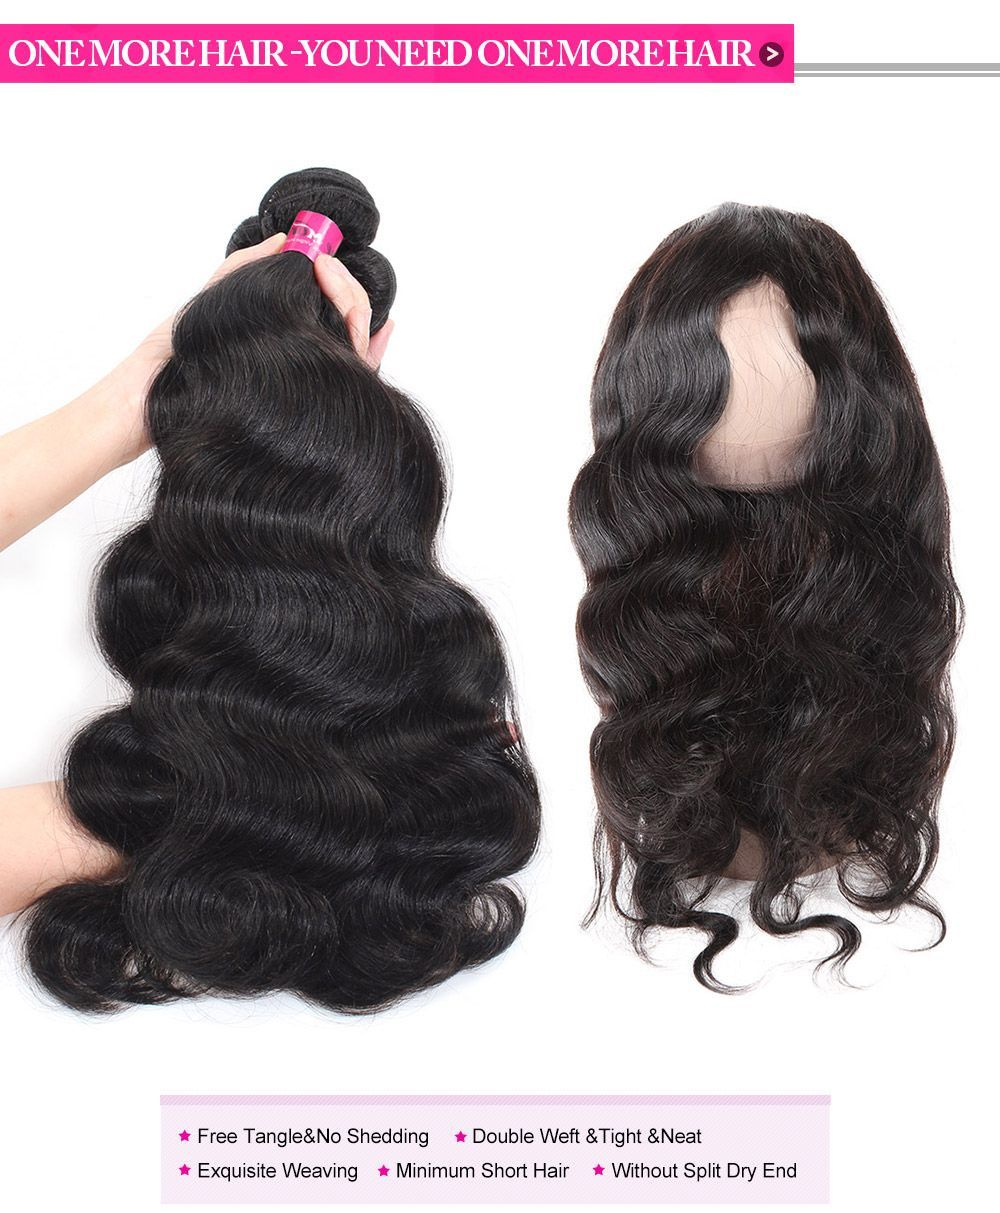 One More Hot Selling 828 Inch 3 Bundles Body Wave Virgin